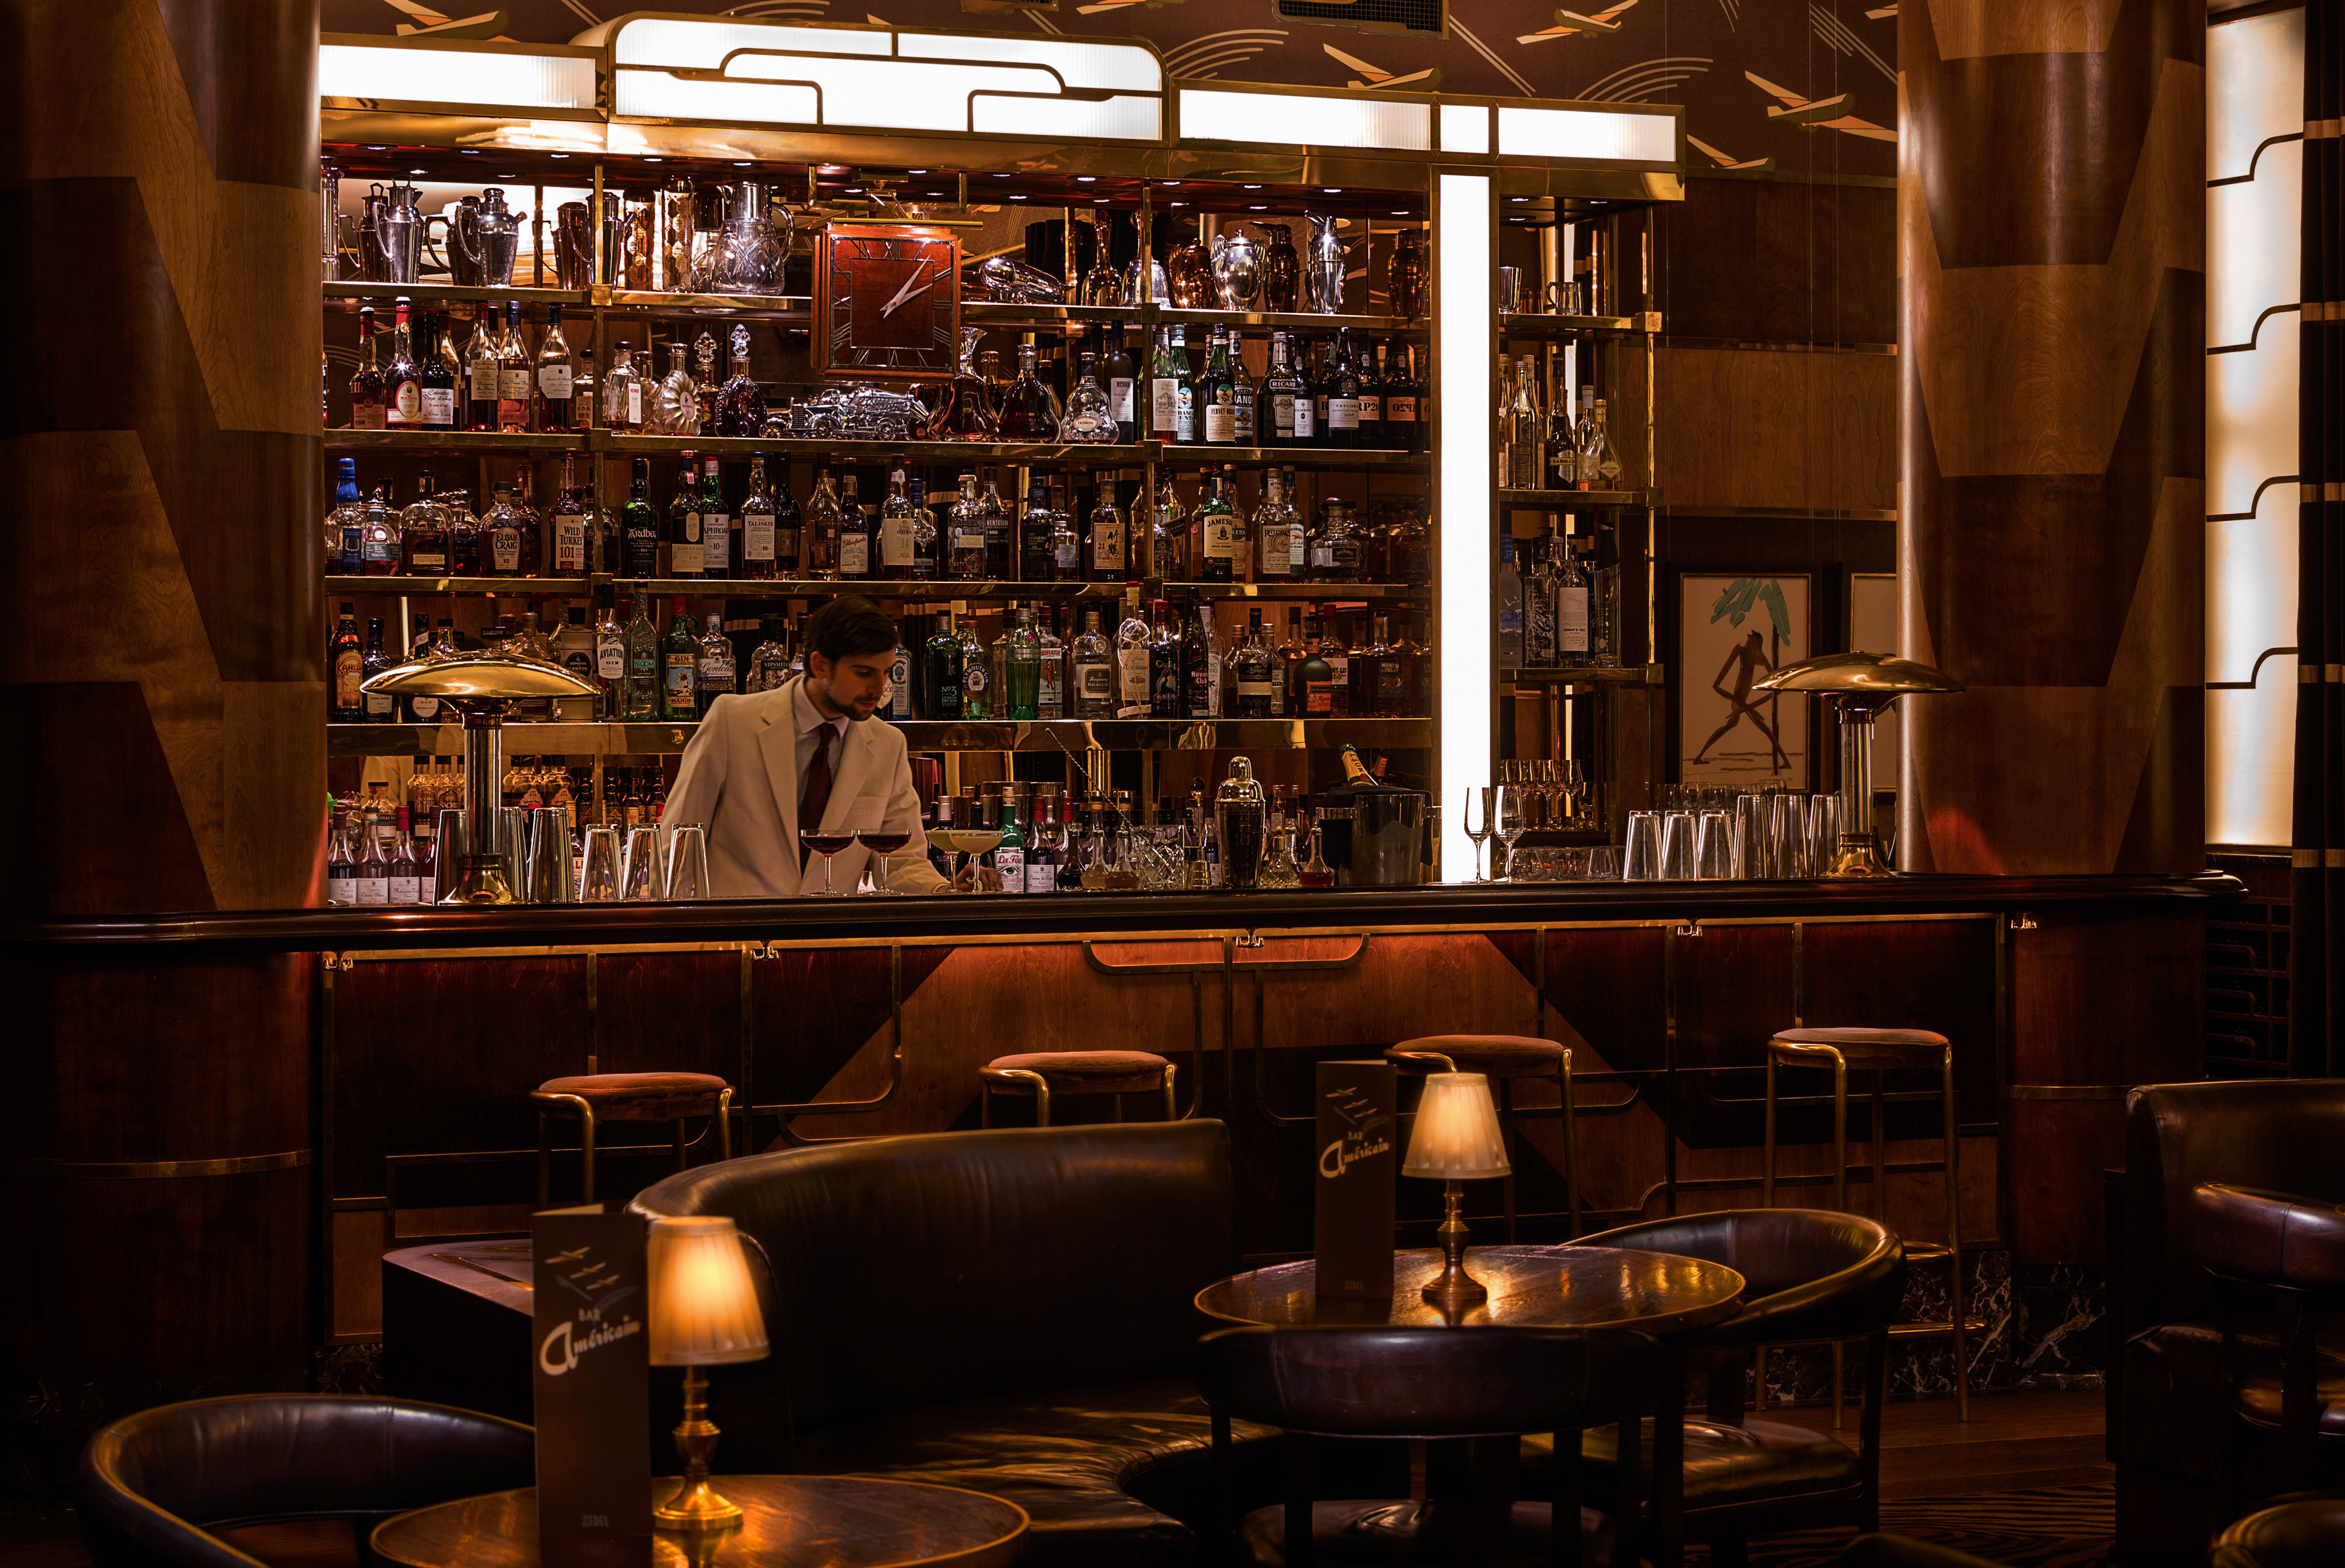 Bar Americain interior Nick Ingram